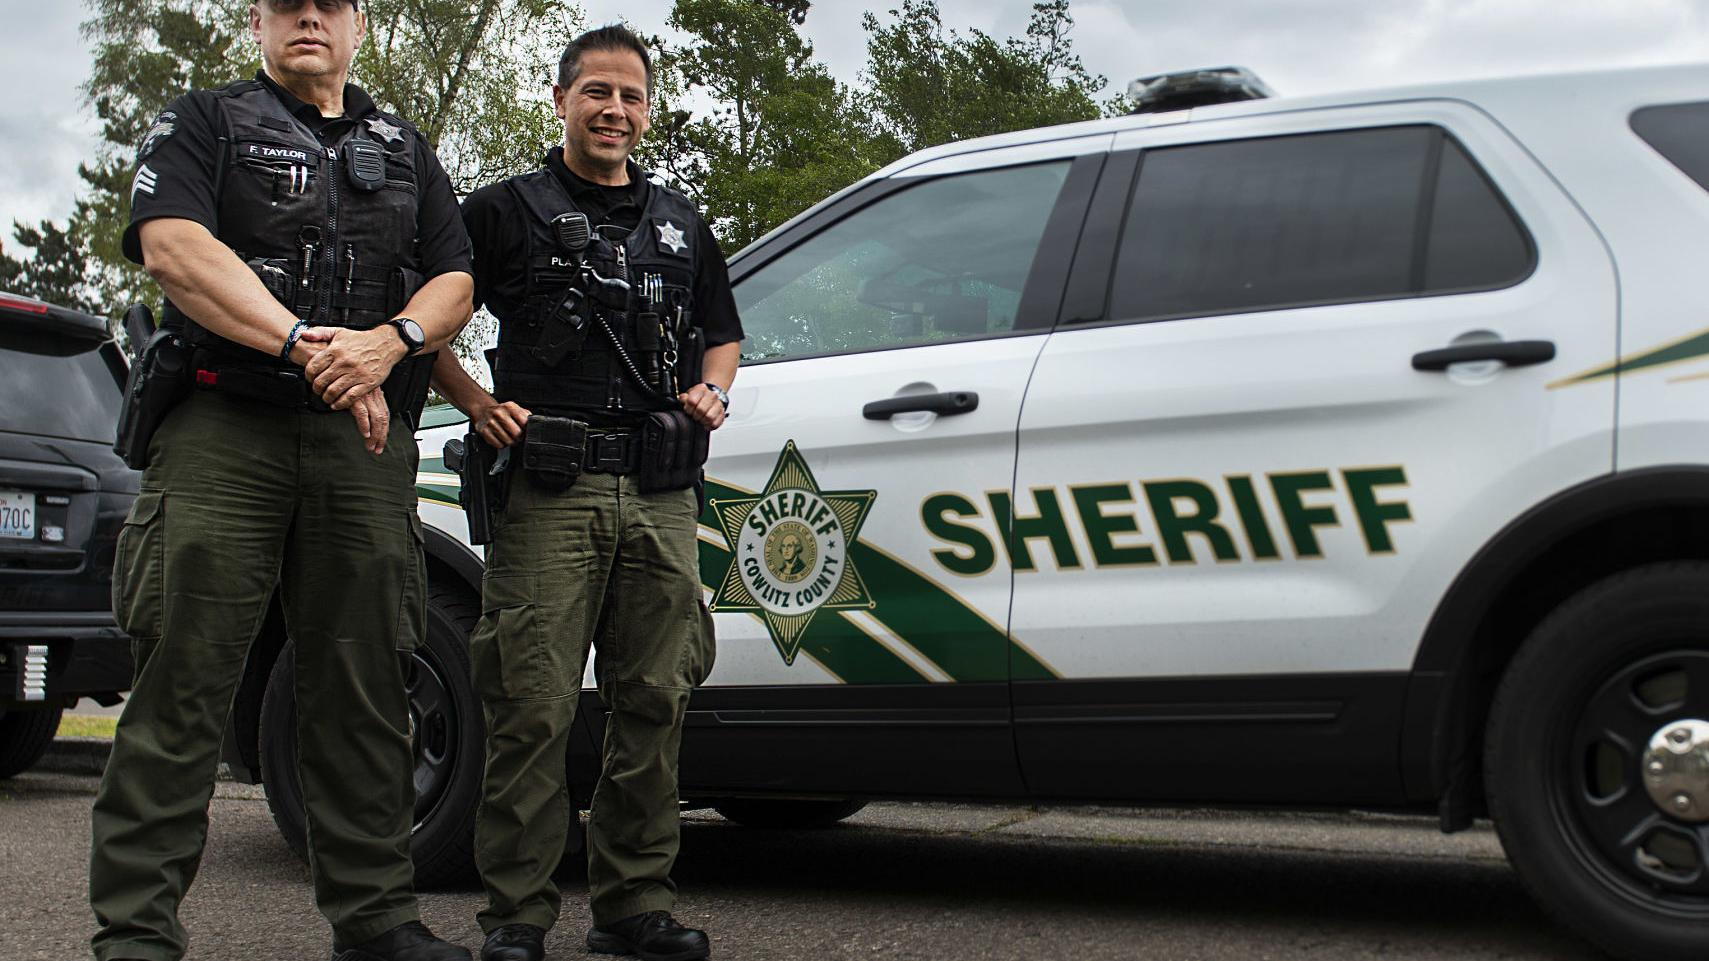 New attire at Cowlitz County sheriff's office makes deputy's uniforms 'more uniform'